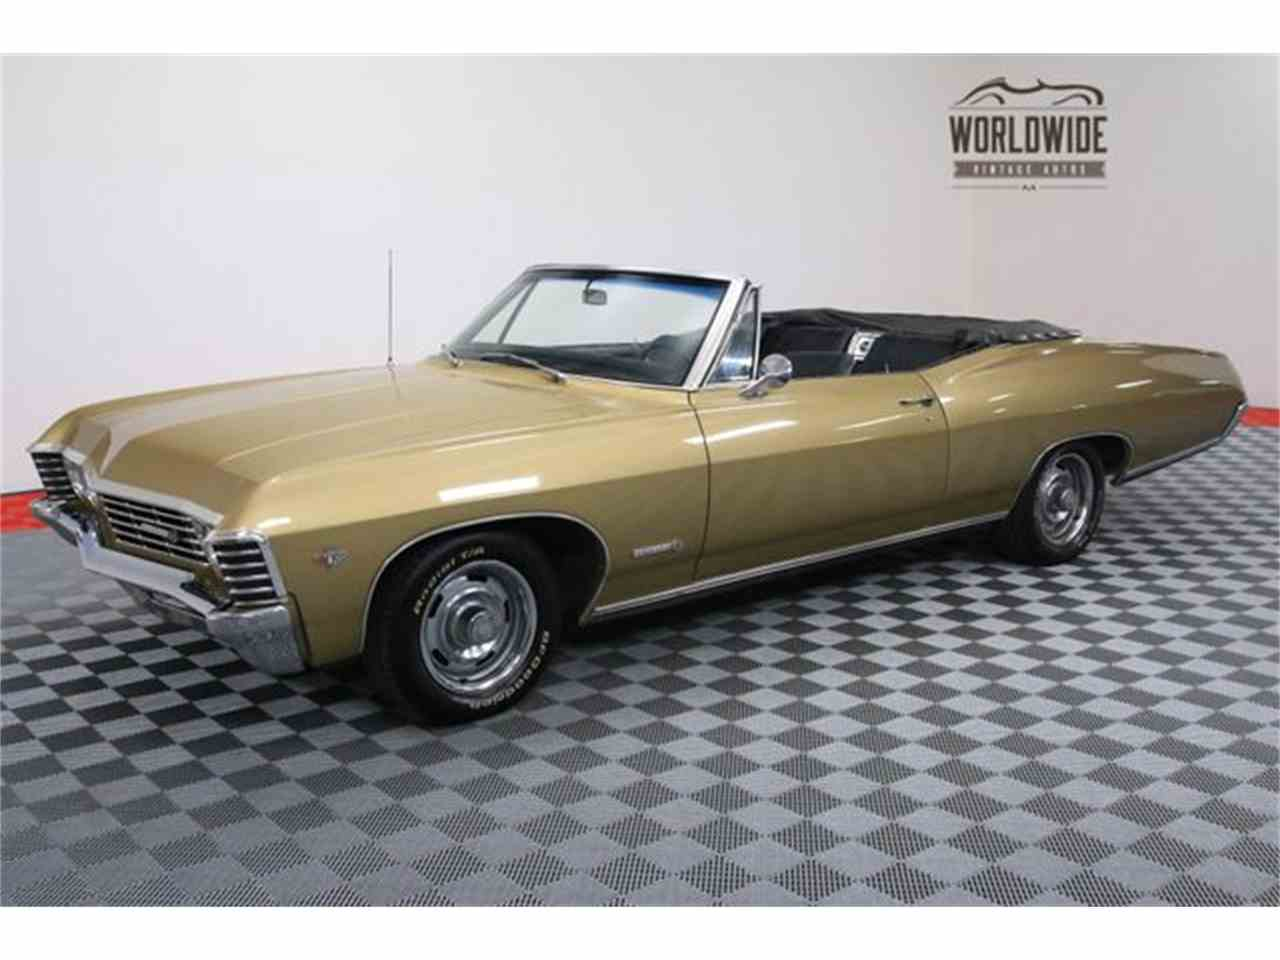 Convertible 1967 chevy impala convertible for sale : 1967 Chevrolet Impala for Sale   ClassicCars.com   CC-1005889